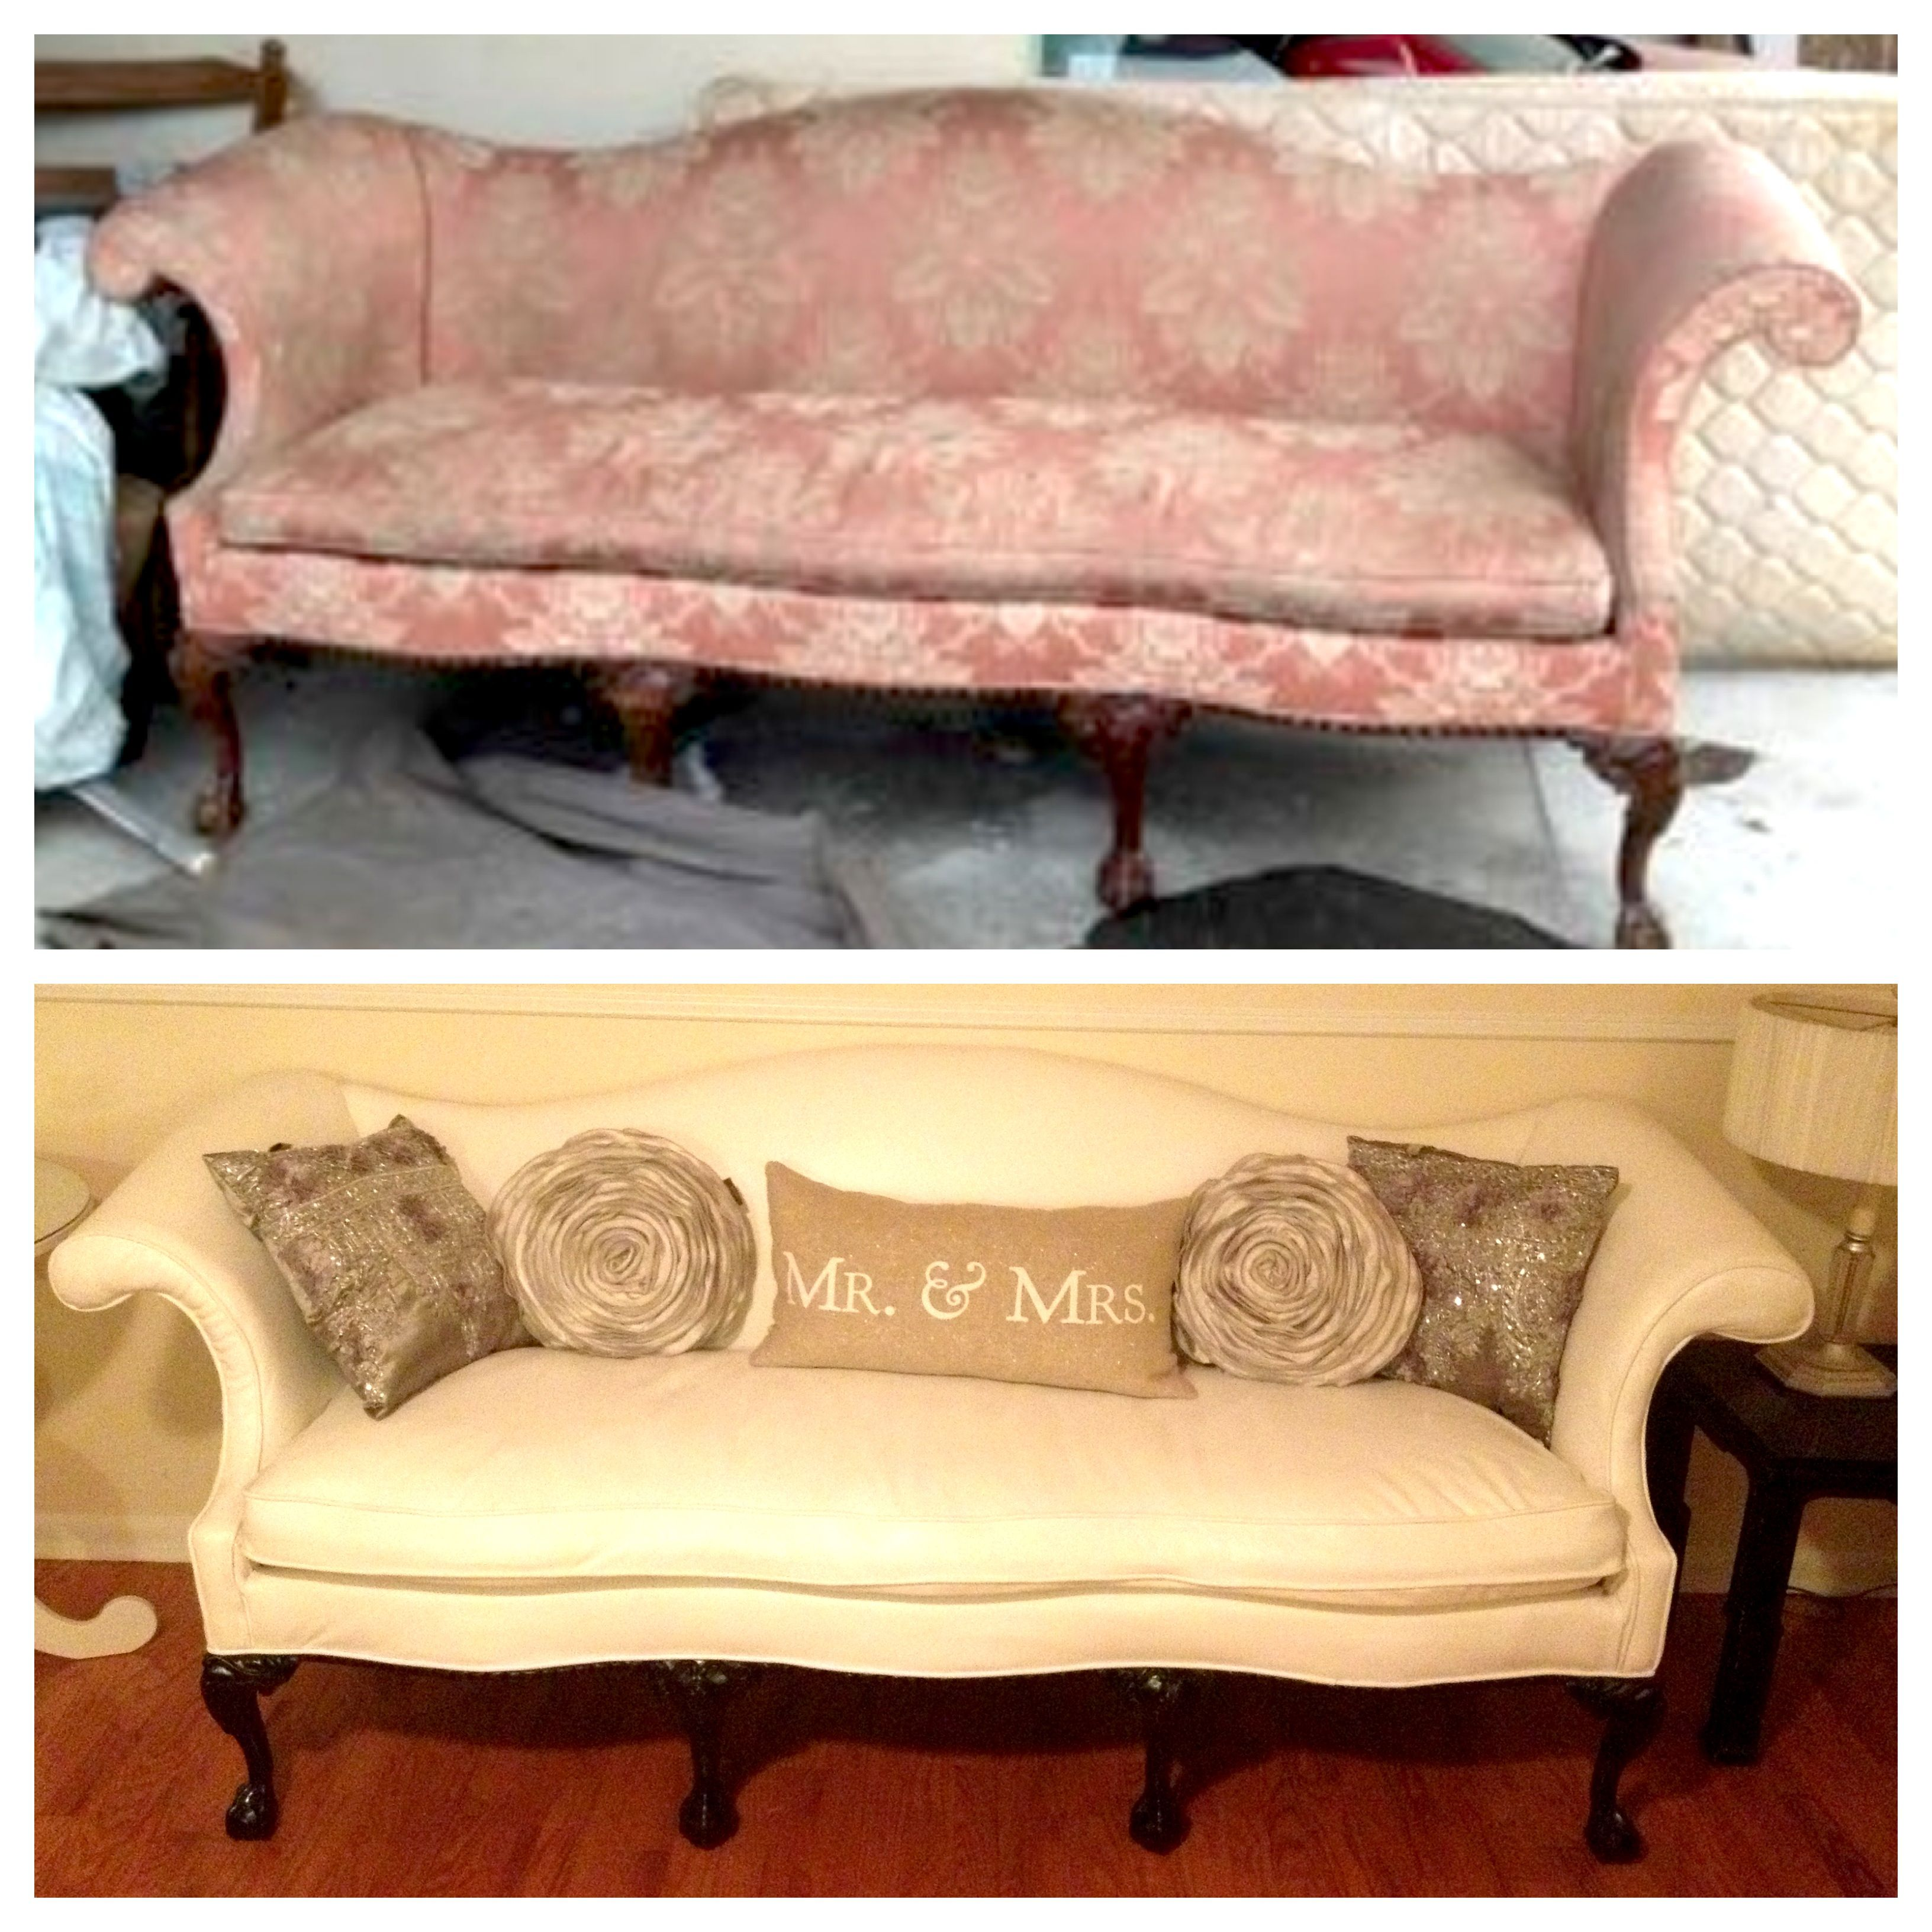 vintage couch before and after furniture reupholster for the home reupholster furniture. Black Bedroom Furniture Sets. Home Design Ideas